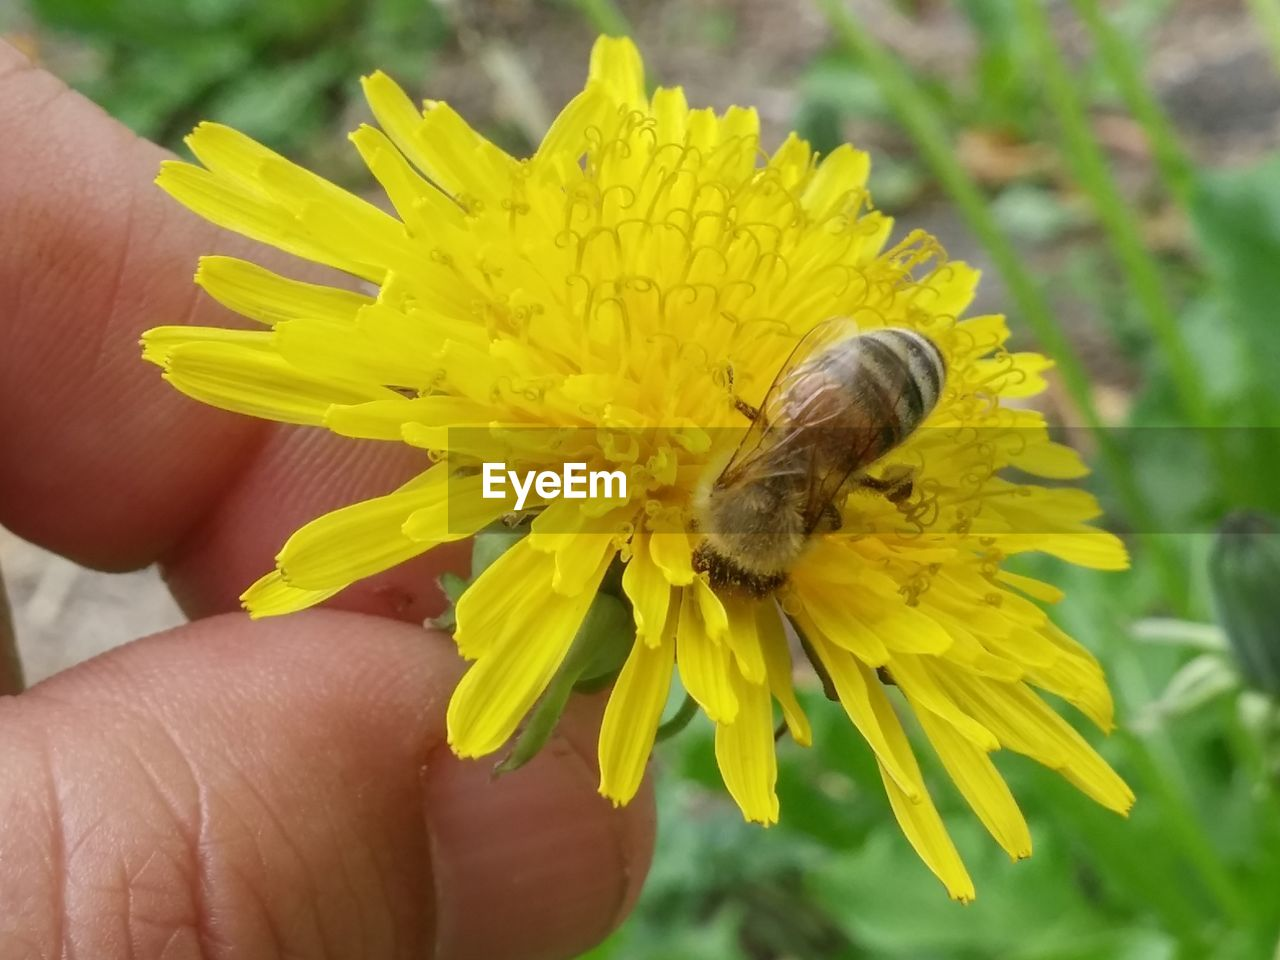 flower, flowering plant, hand, human hand, human body part, yellow, beauty in nature, fragility, animal wildlife, vulnerability, plant, body part, close-up, animal themes, animal, freshness, flower head, one person, petal, focus on foreground, finger, outdoors, pollen, pollination, butterfly - insect